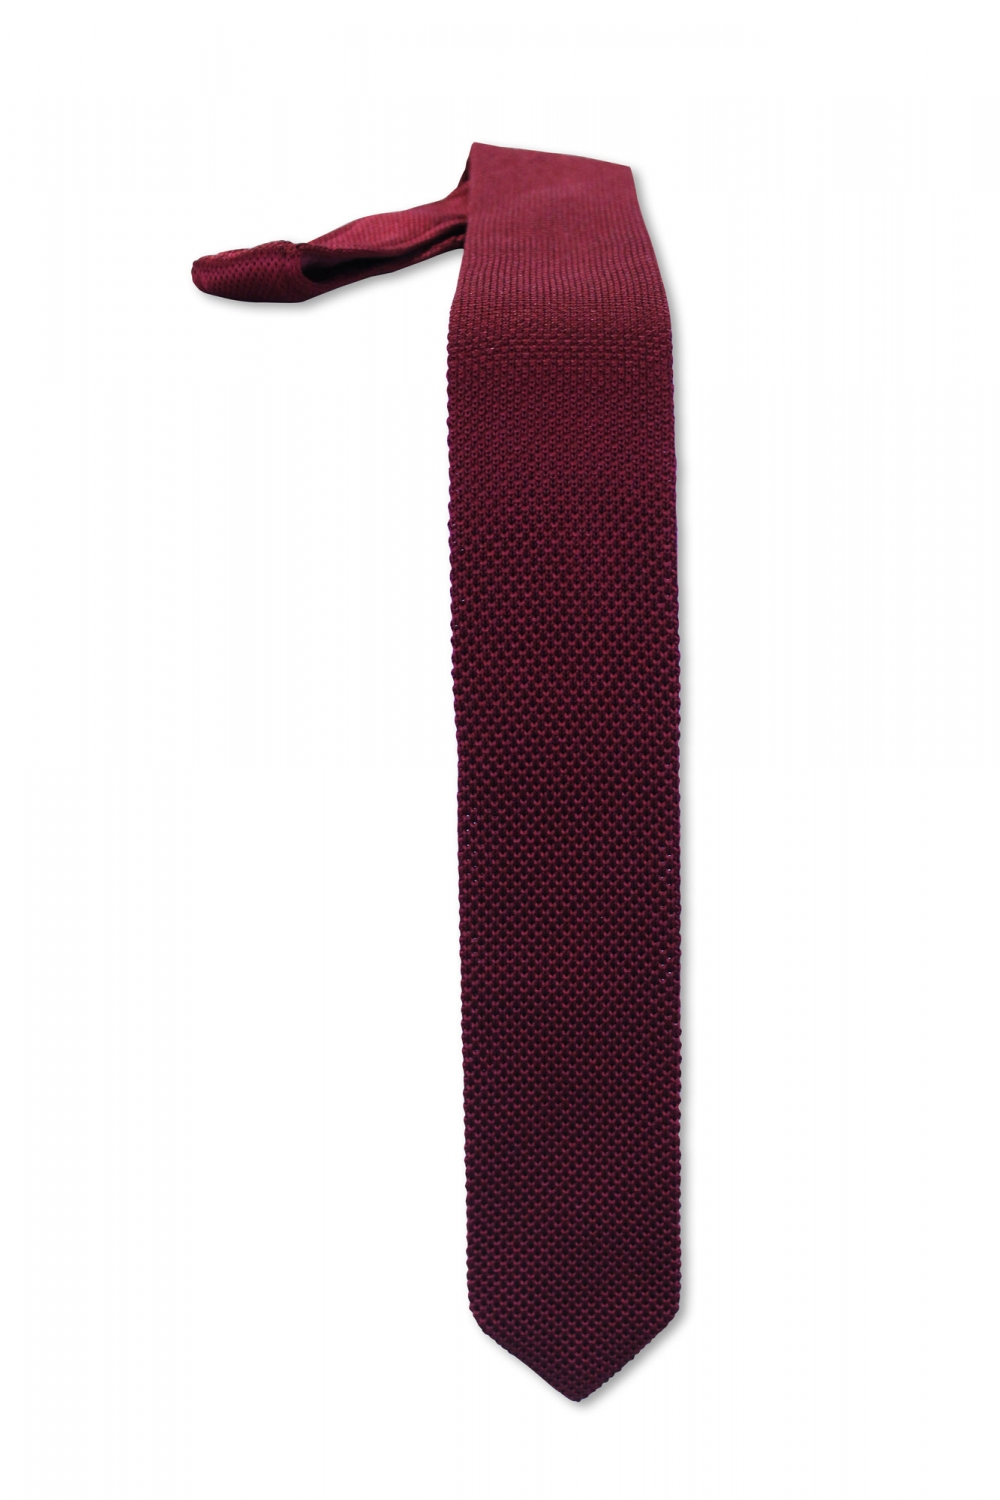 Noose & Monkey Bowie Plain Knitted Tie Burgundy